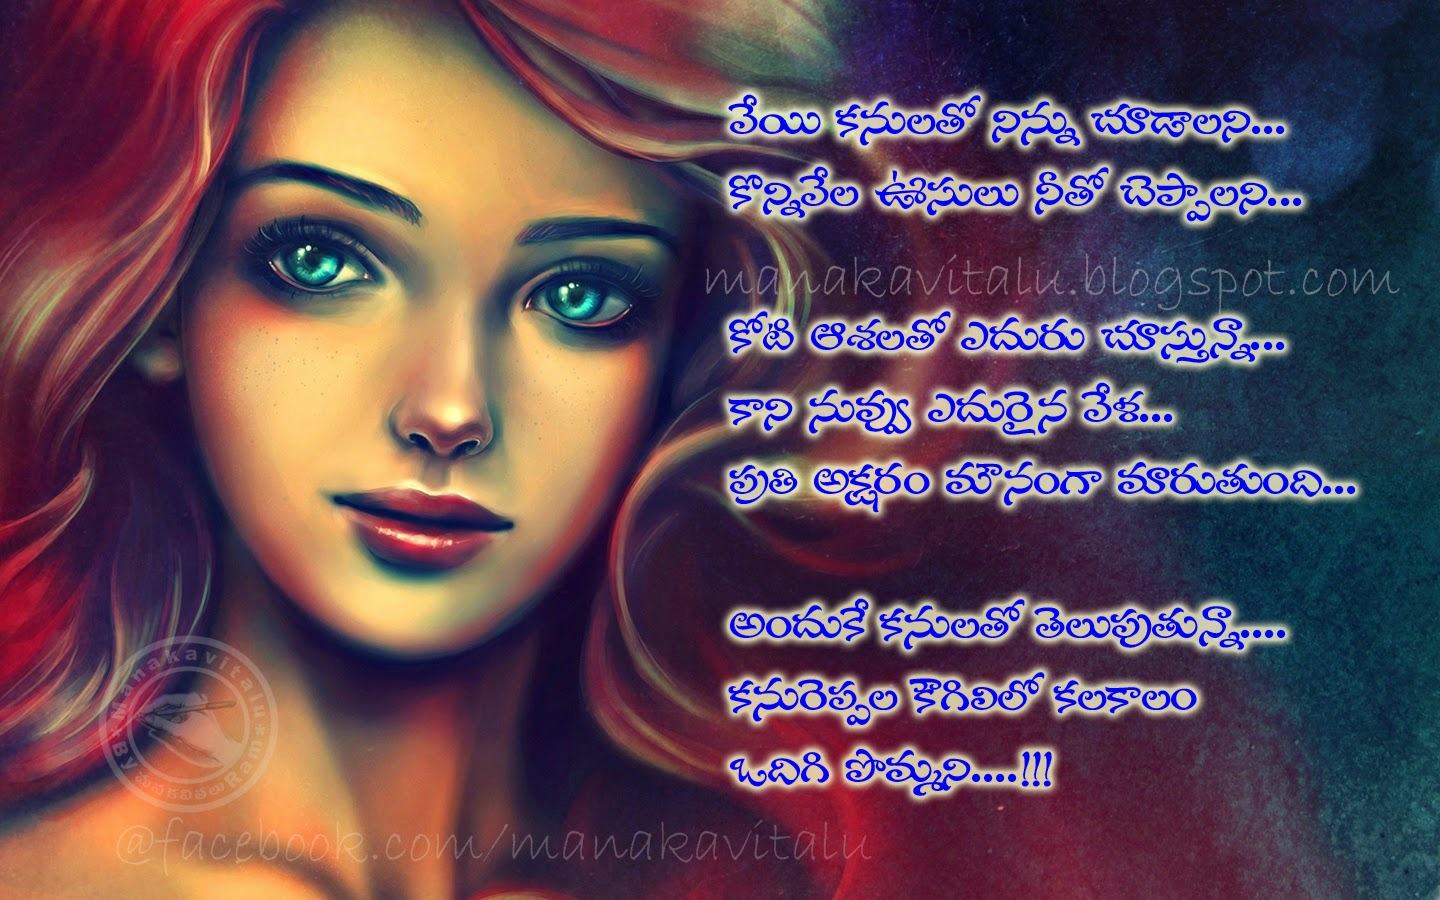 new Telugu love quote on images by Manakavitalu